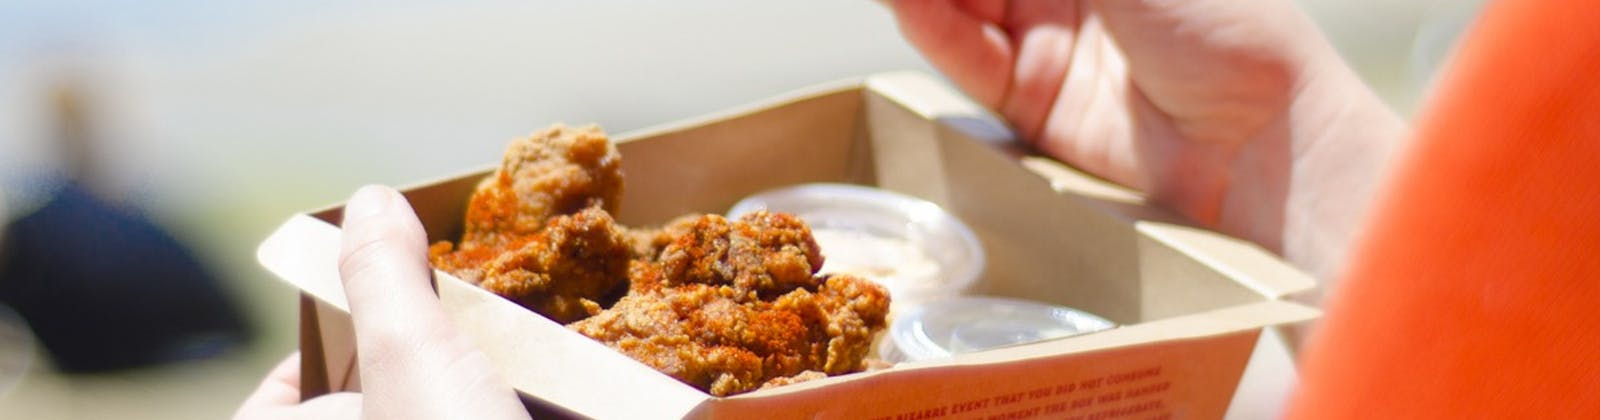 Fried chicken takeaway box from Mexico